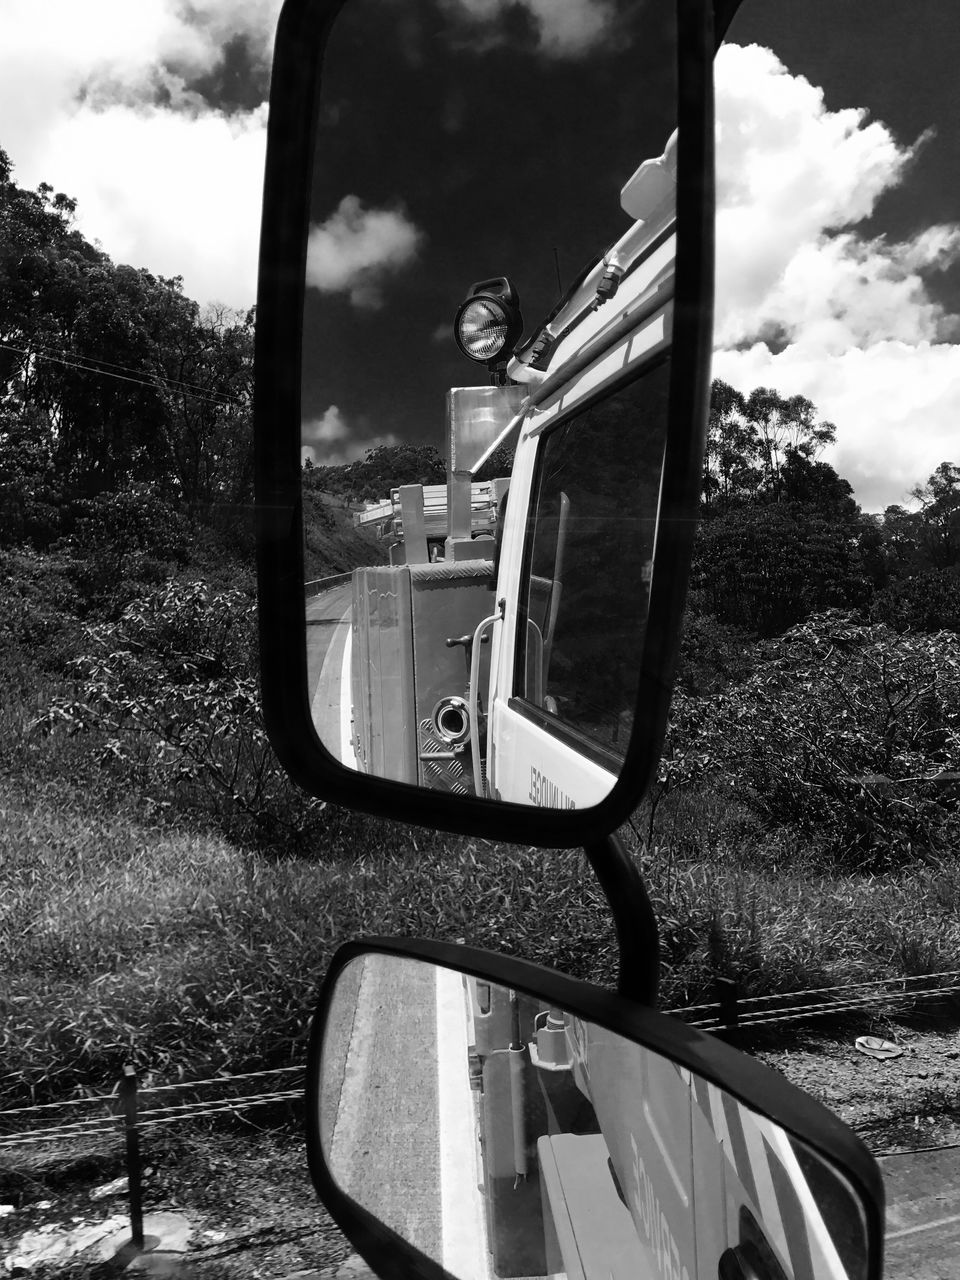 transportation, side-view mirror, mode of transport, reflection, cloud - sky, sky, land vehicle, day, car, tree, outdoors, one person, real people, nature, people